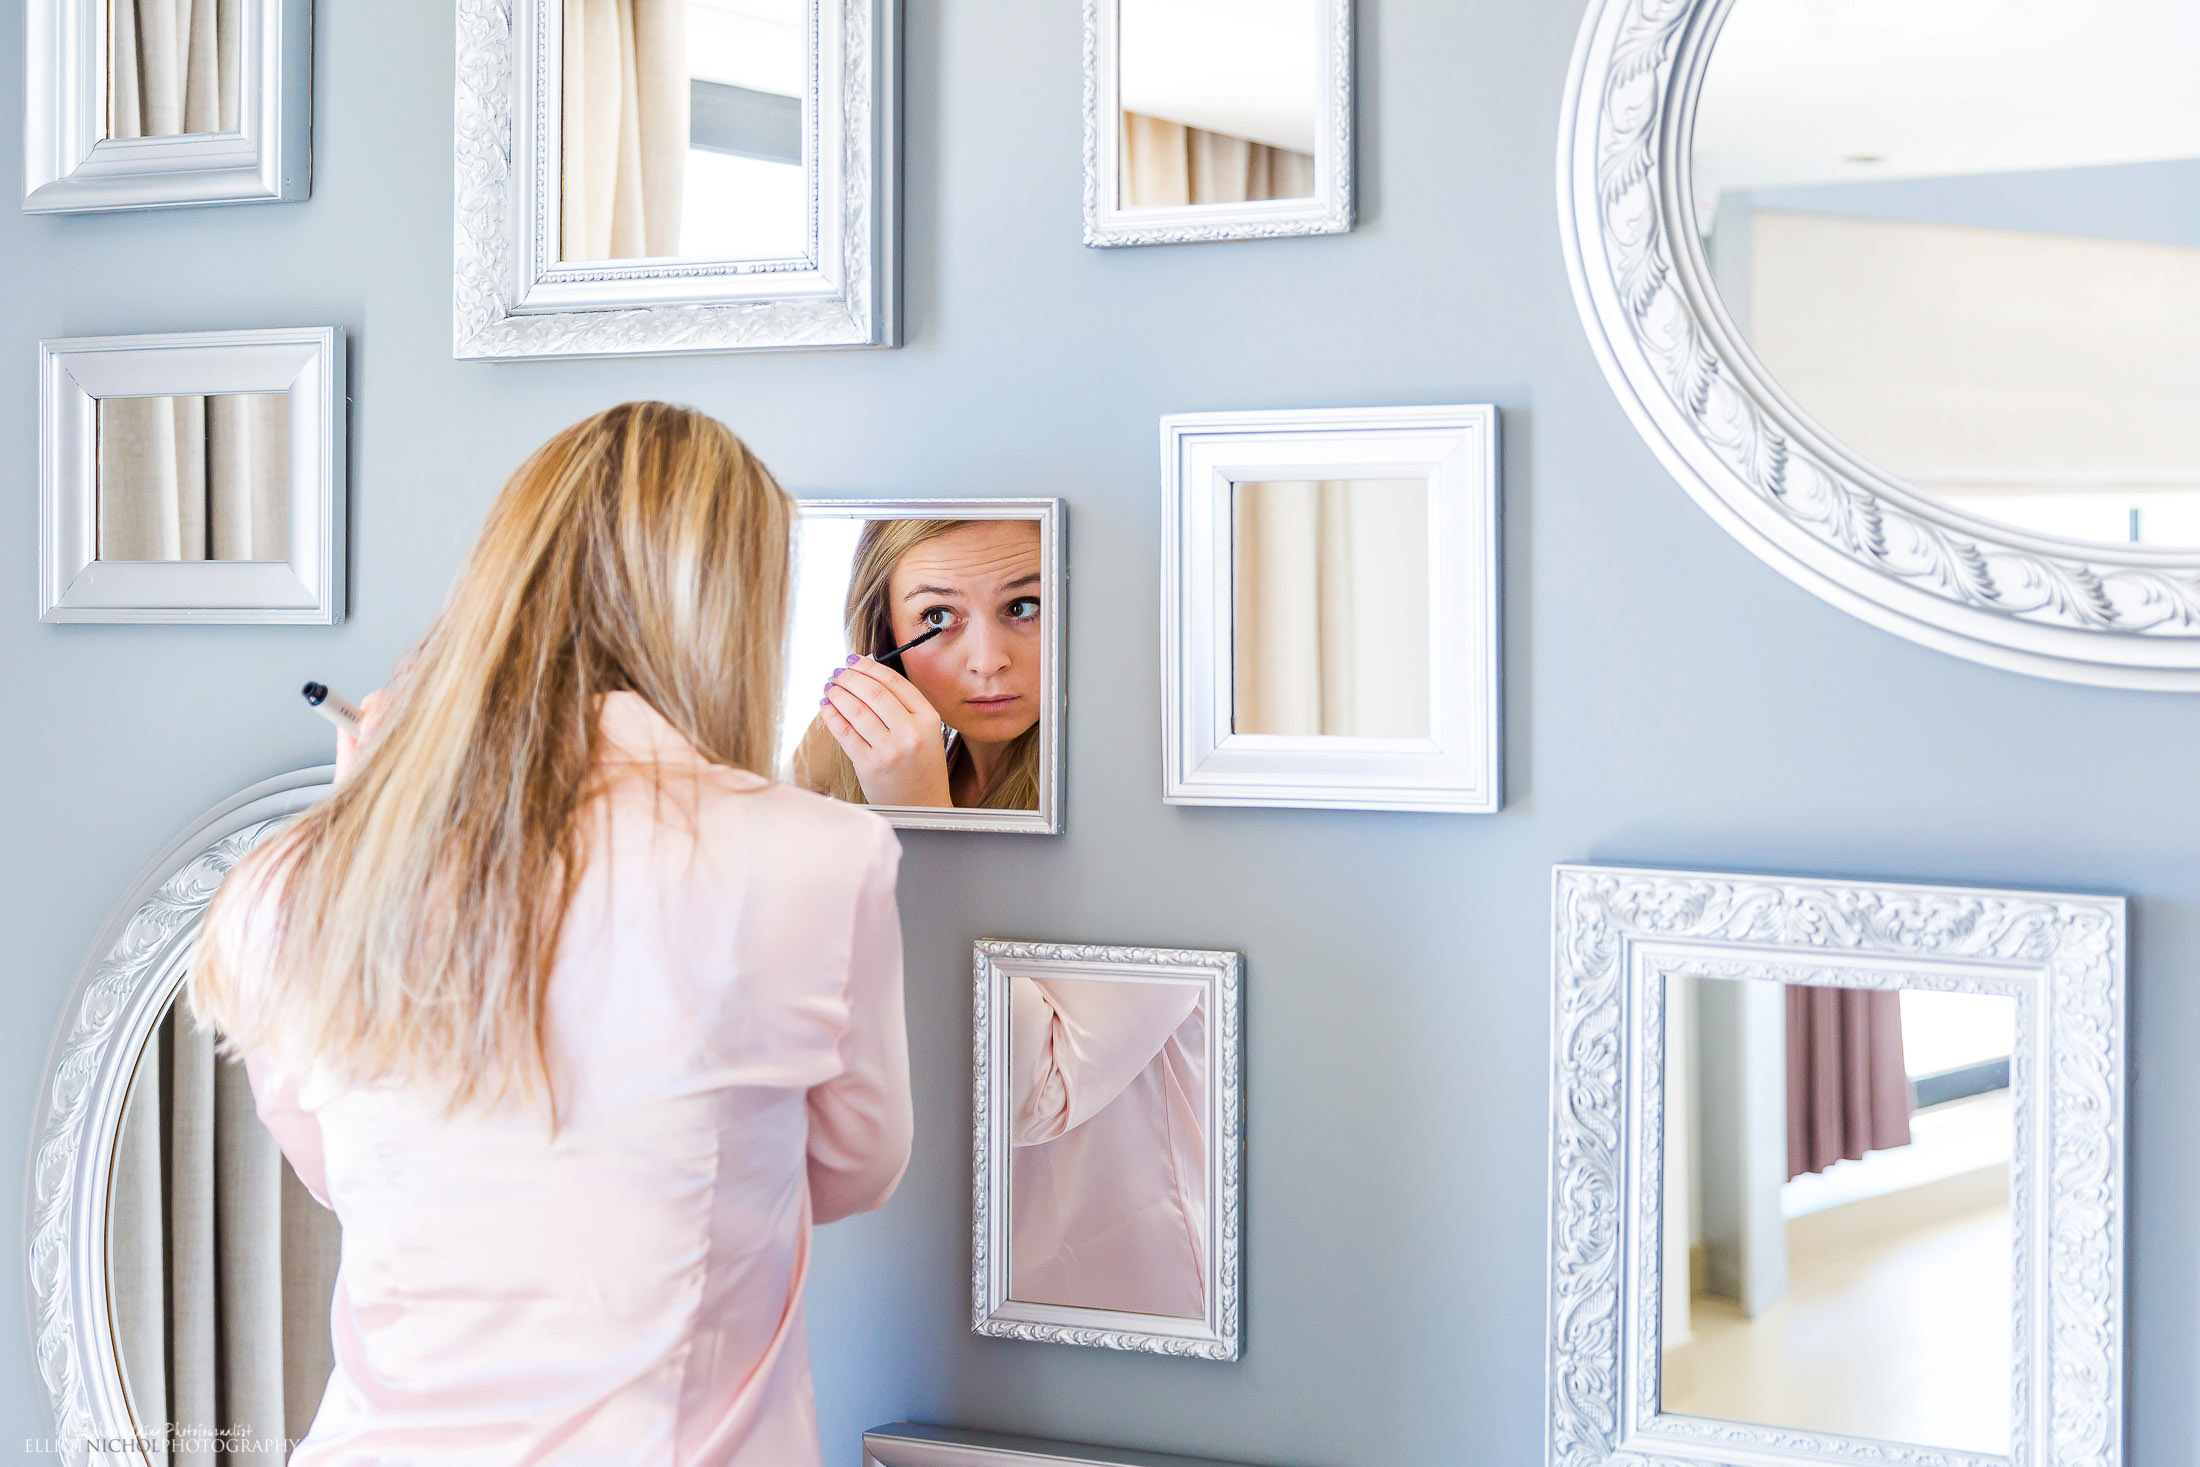 Bridesmaid getting ready in one of the many mirrors on the wall. Photo by Elliot Nichol Photography.